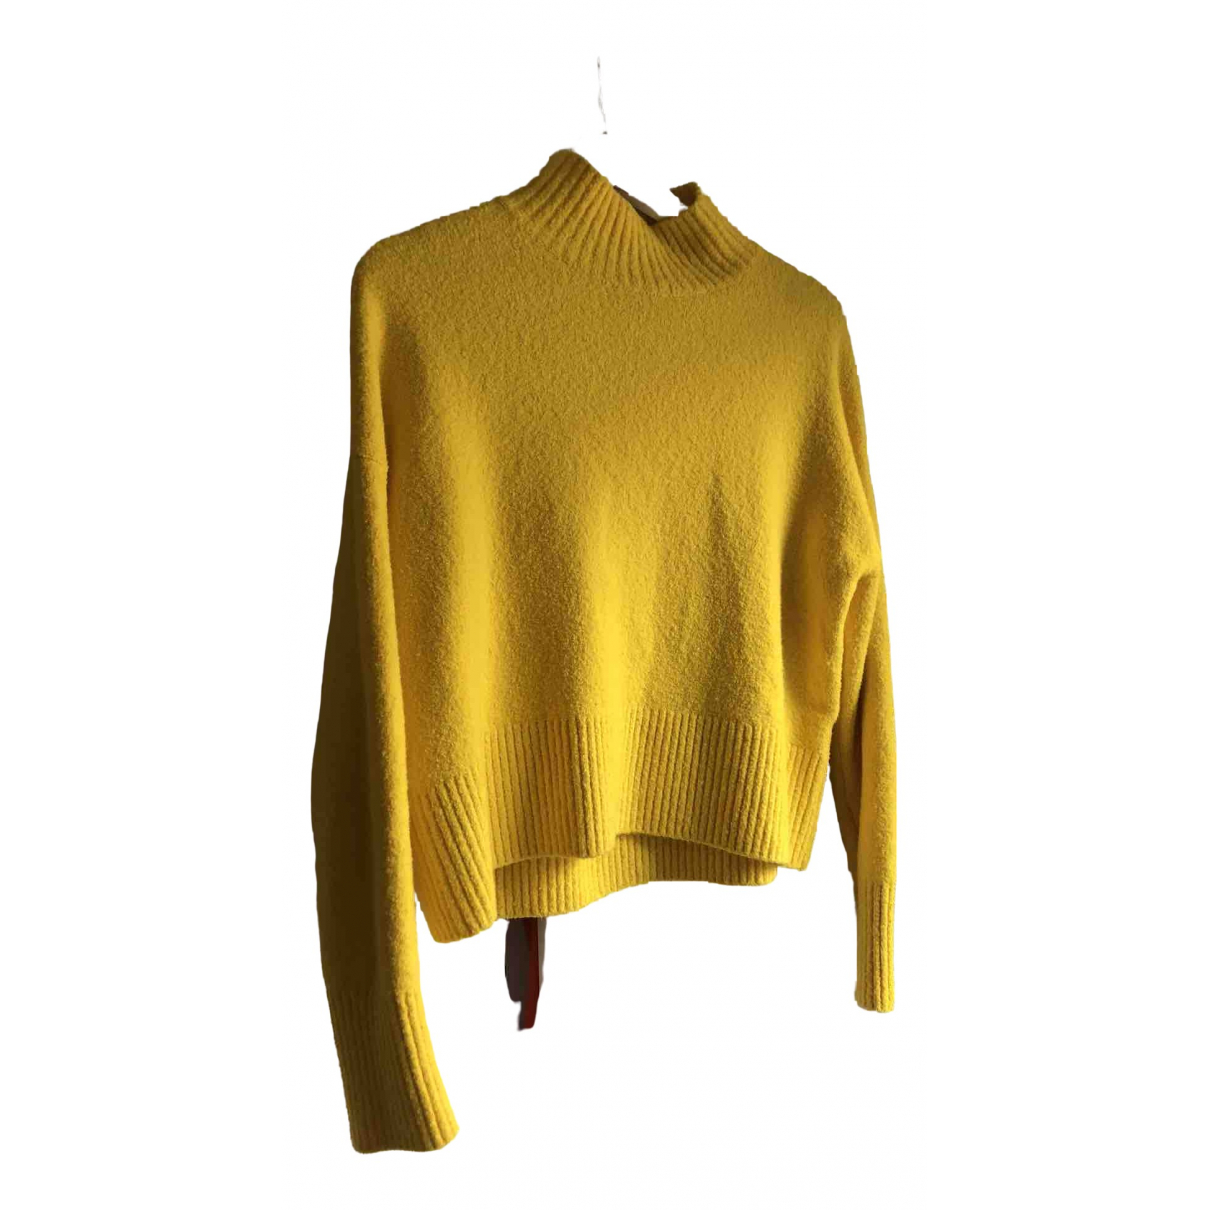 & Other Stories - Pull   pour femme en coton - jaune